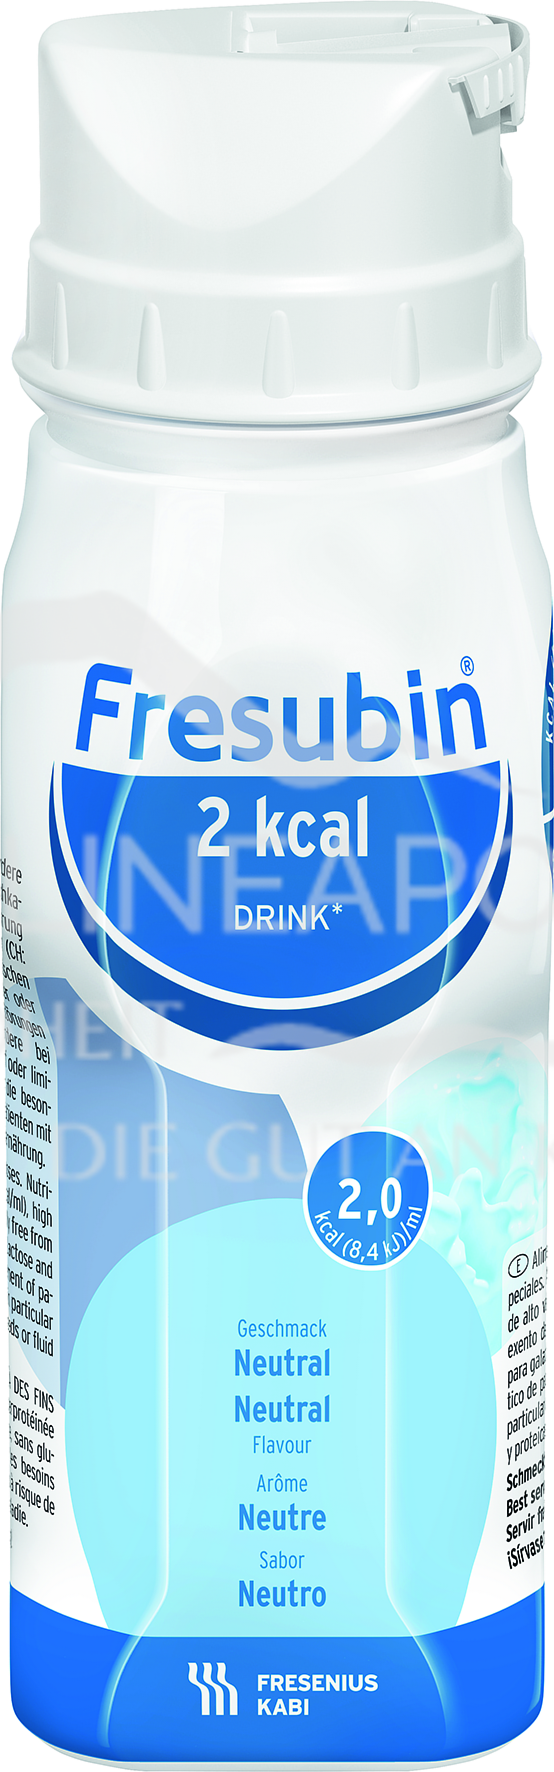 Fresubin® 2kcal Drink Neutral